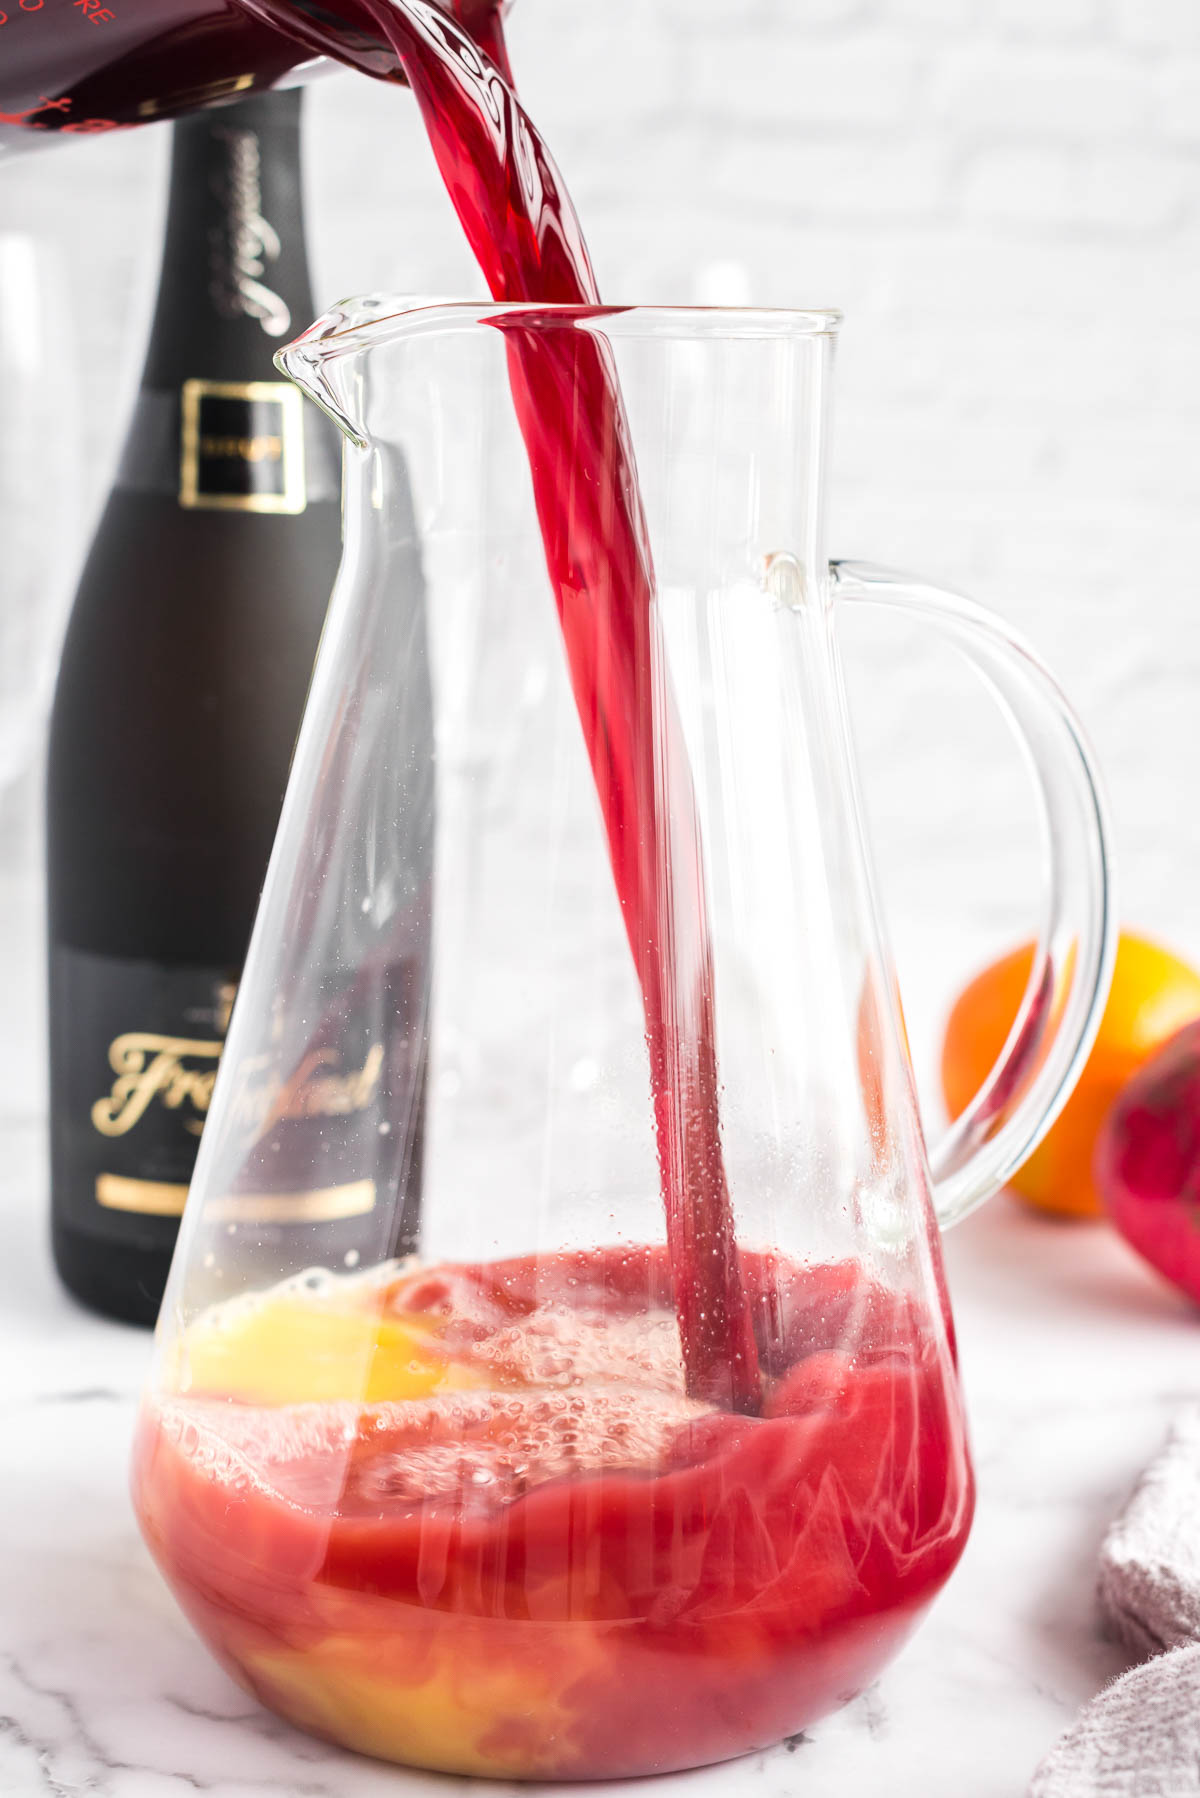 Pomegranate juice poured into a clear pitcher of orange juice for mimosa